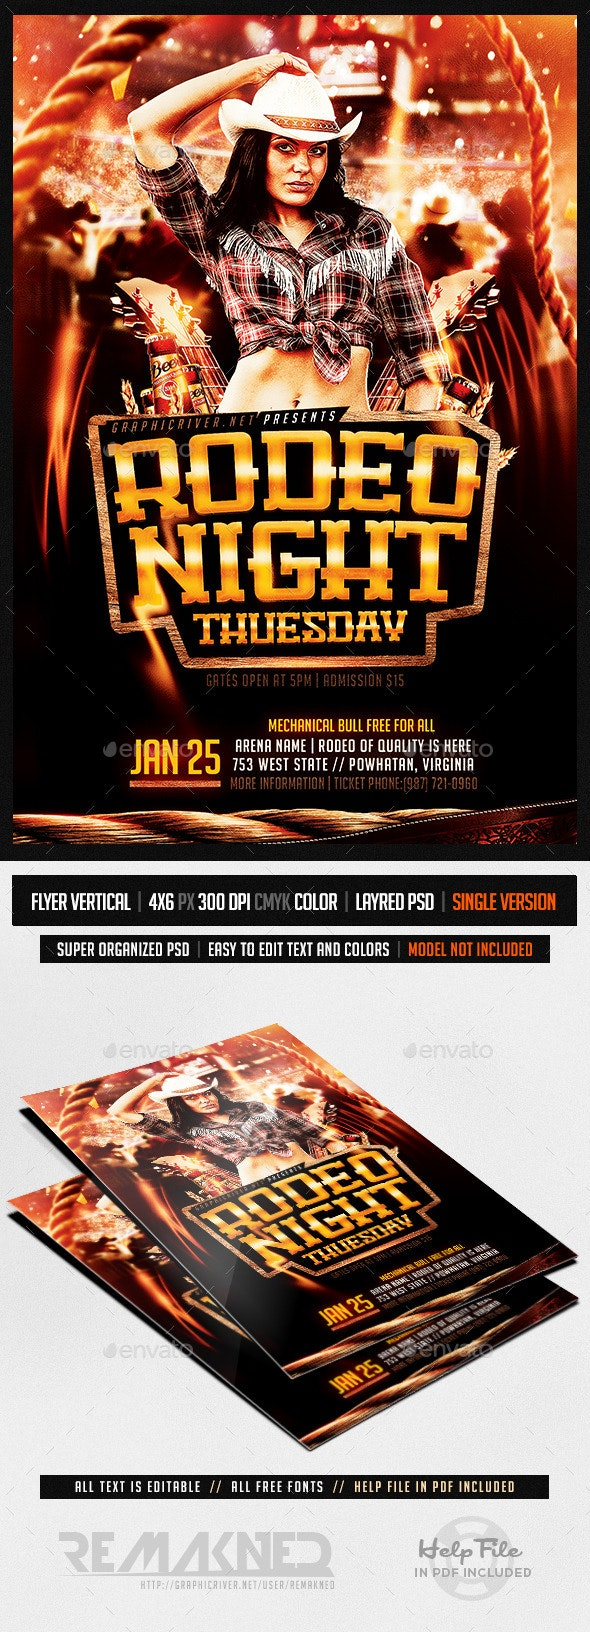 Rodeo Night Tuesdays | Flyer Template PSD - Events Flyers